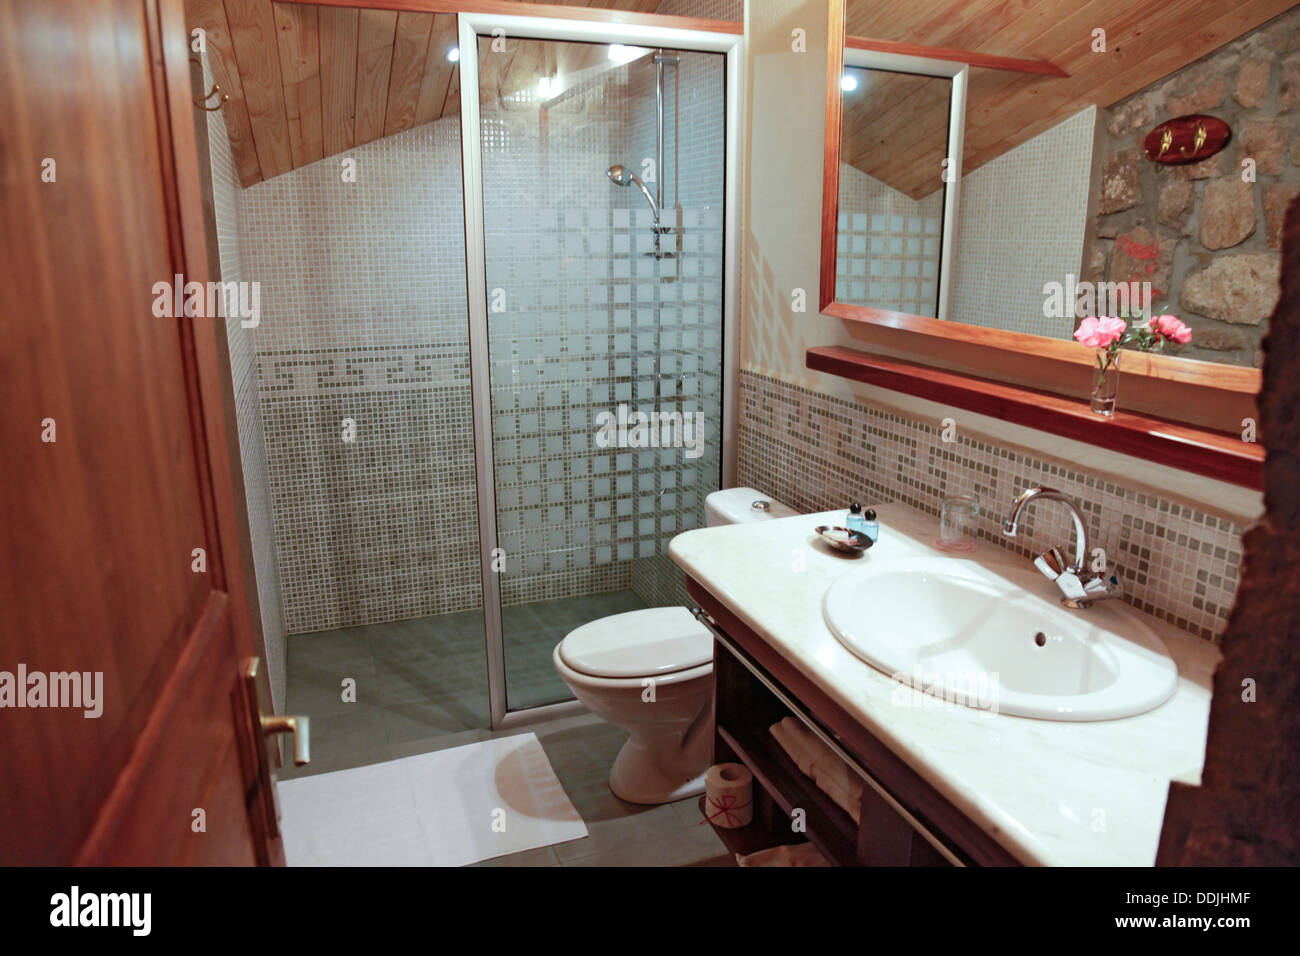 Guest room toilet in Relais de la Reine Lodge, Madagascar, showing shower cubicle, toilet and sink/vanity area - Stock Image